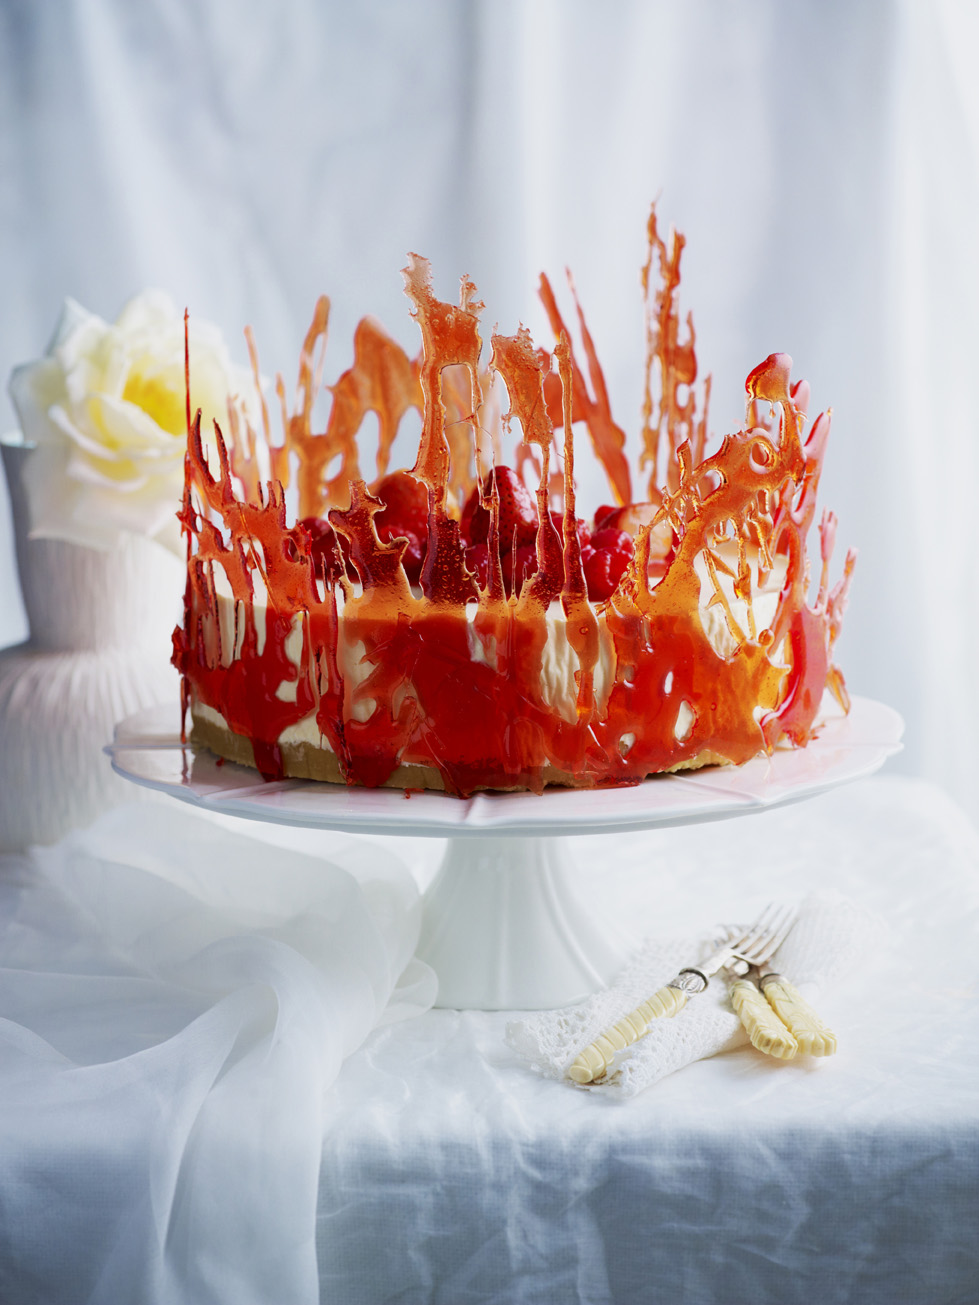 Fire and ice cake 2.jpg